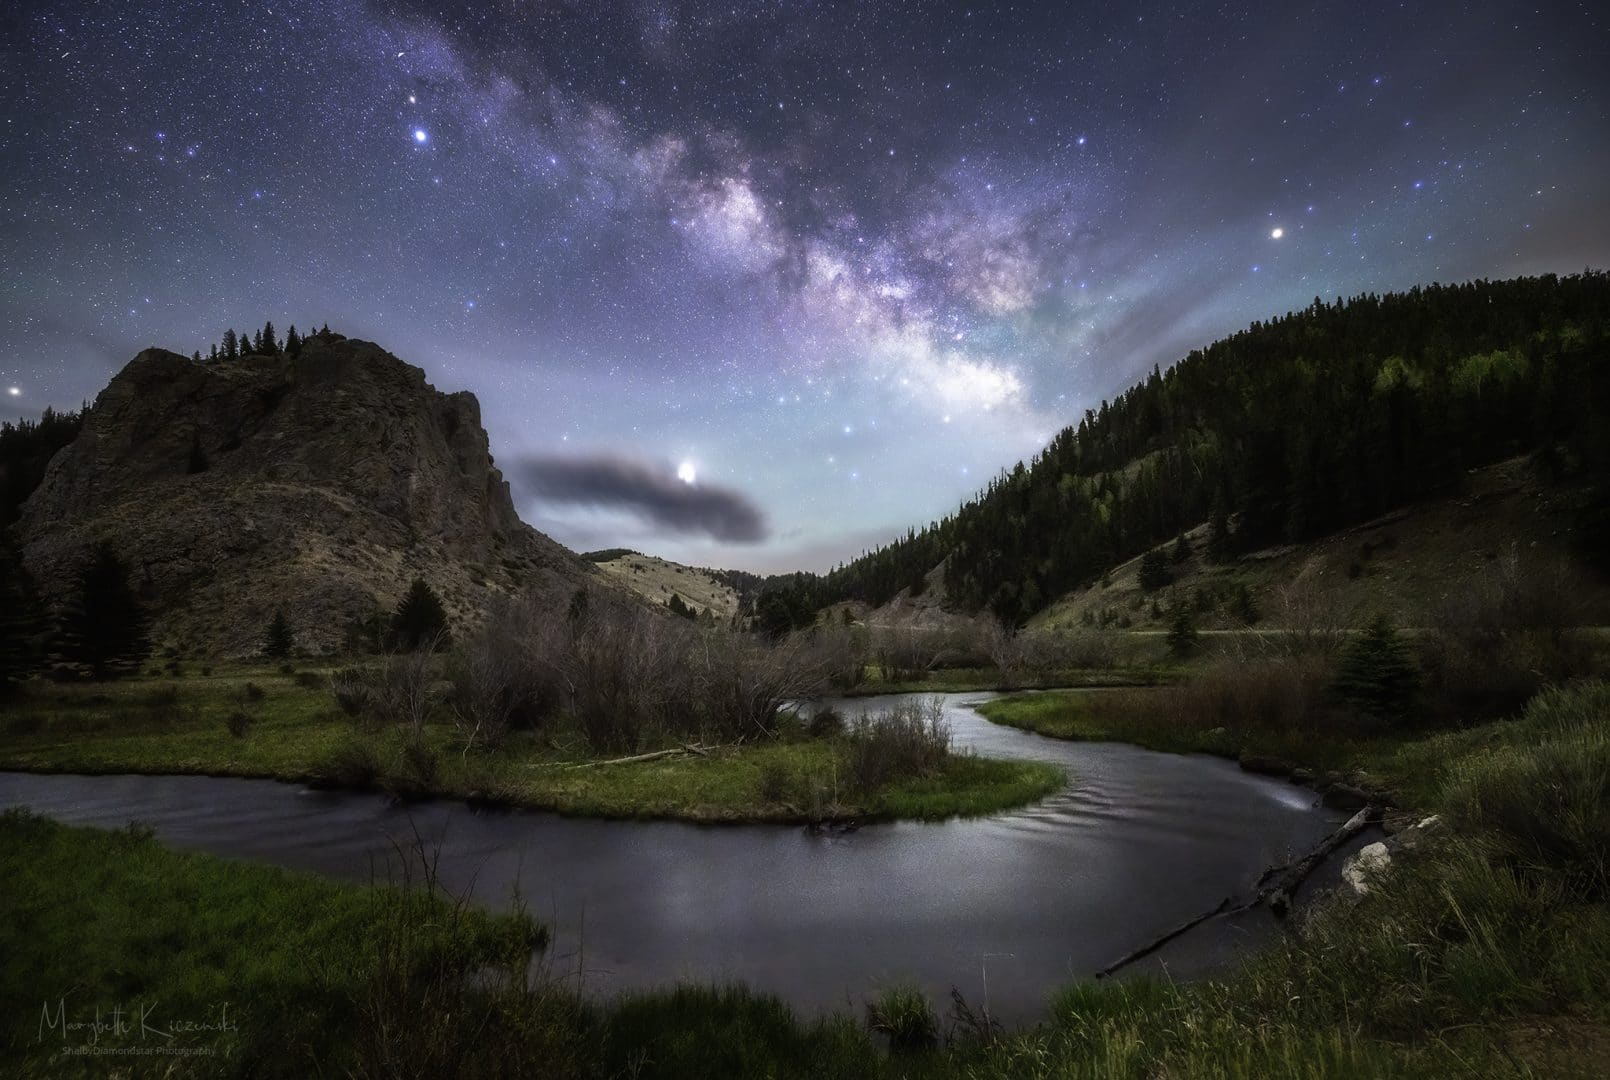 Riverbend and moonlit Milky Way - Nikon D850 - Nikkor 14-24mm - Tracked/Untracked. Copyright 2020 MaryBeth Kiczenski.